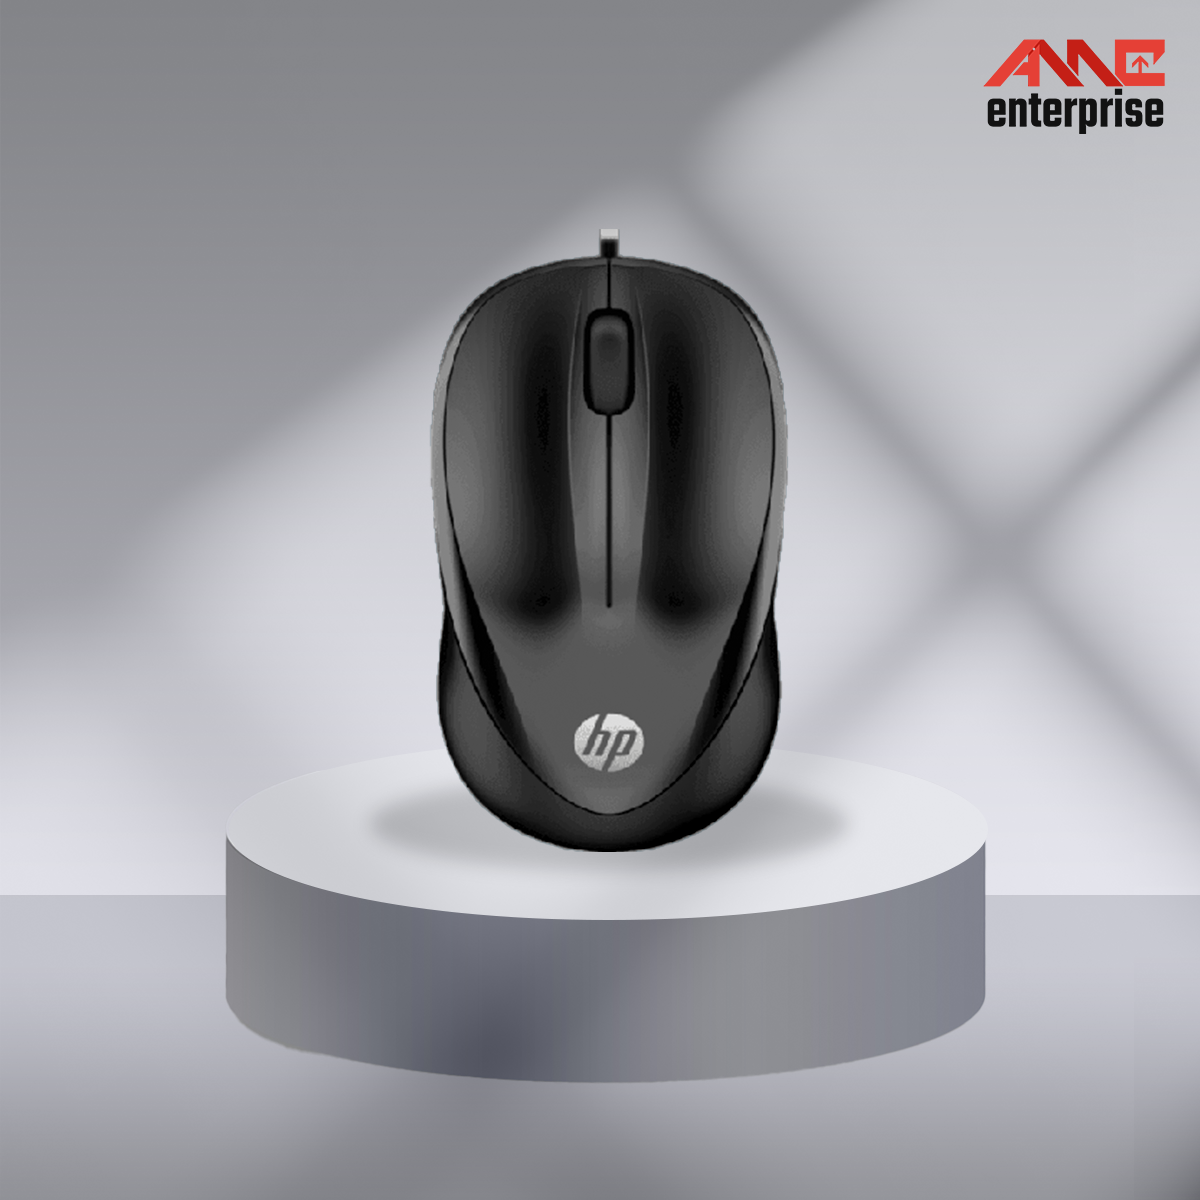 HP wireless mouse 1000.png